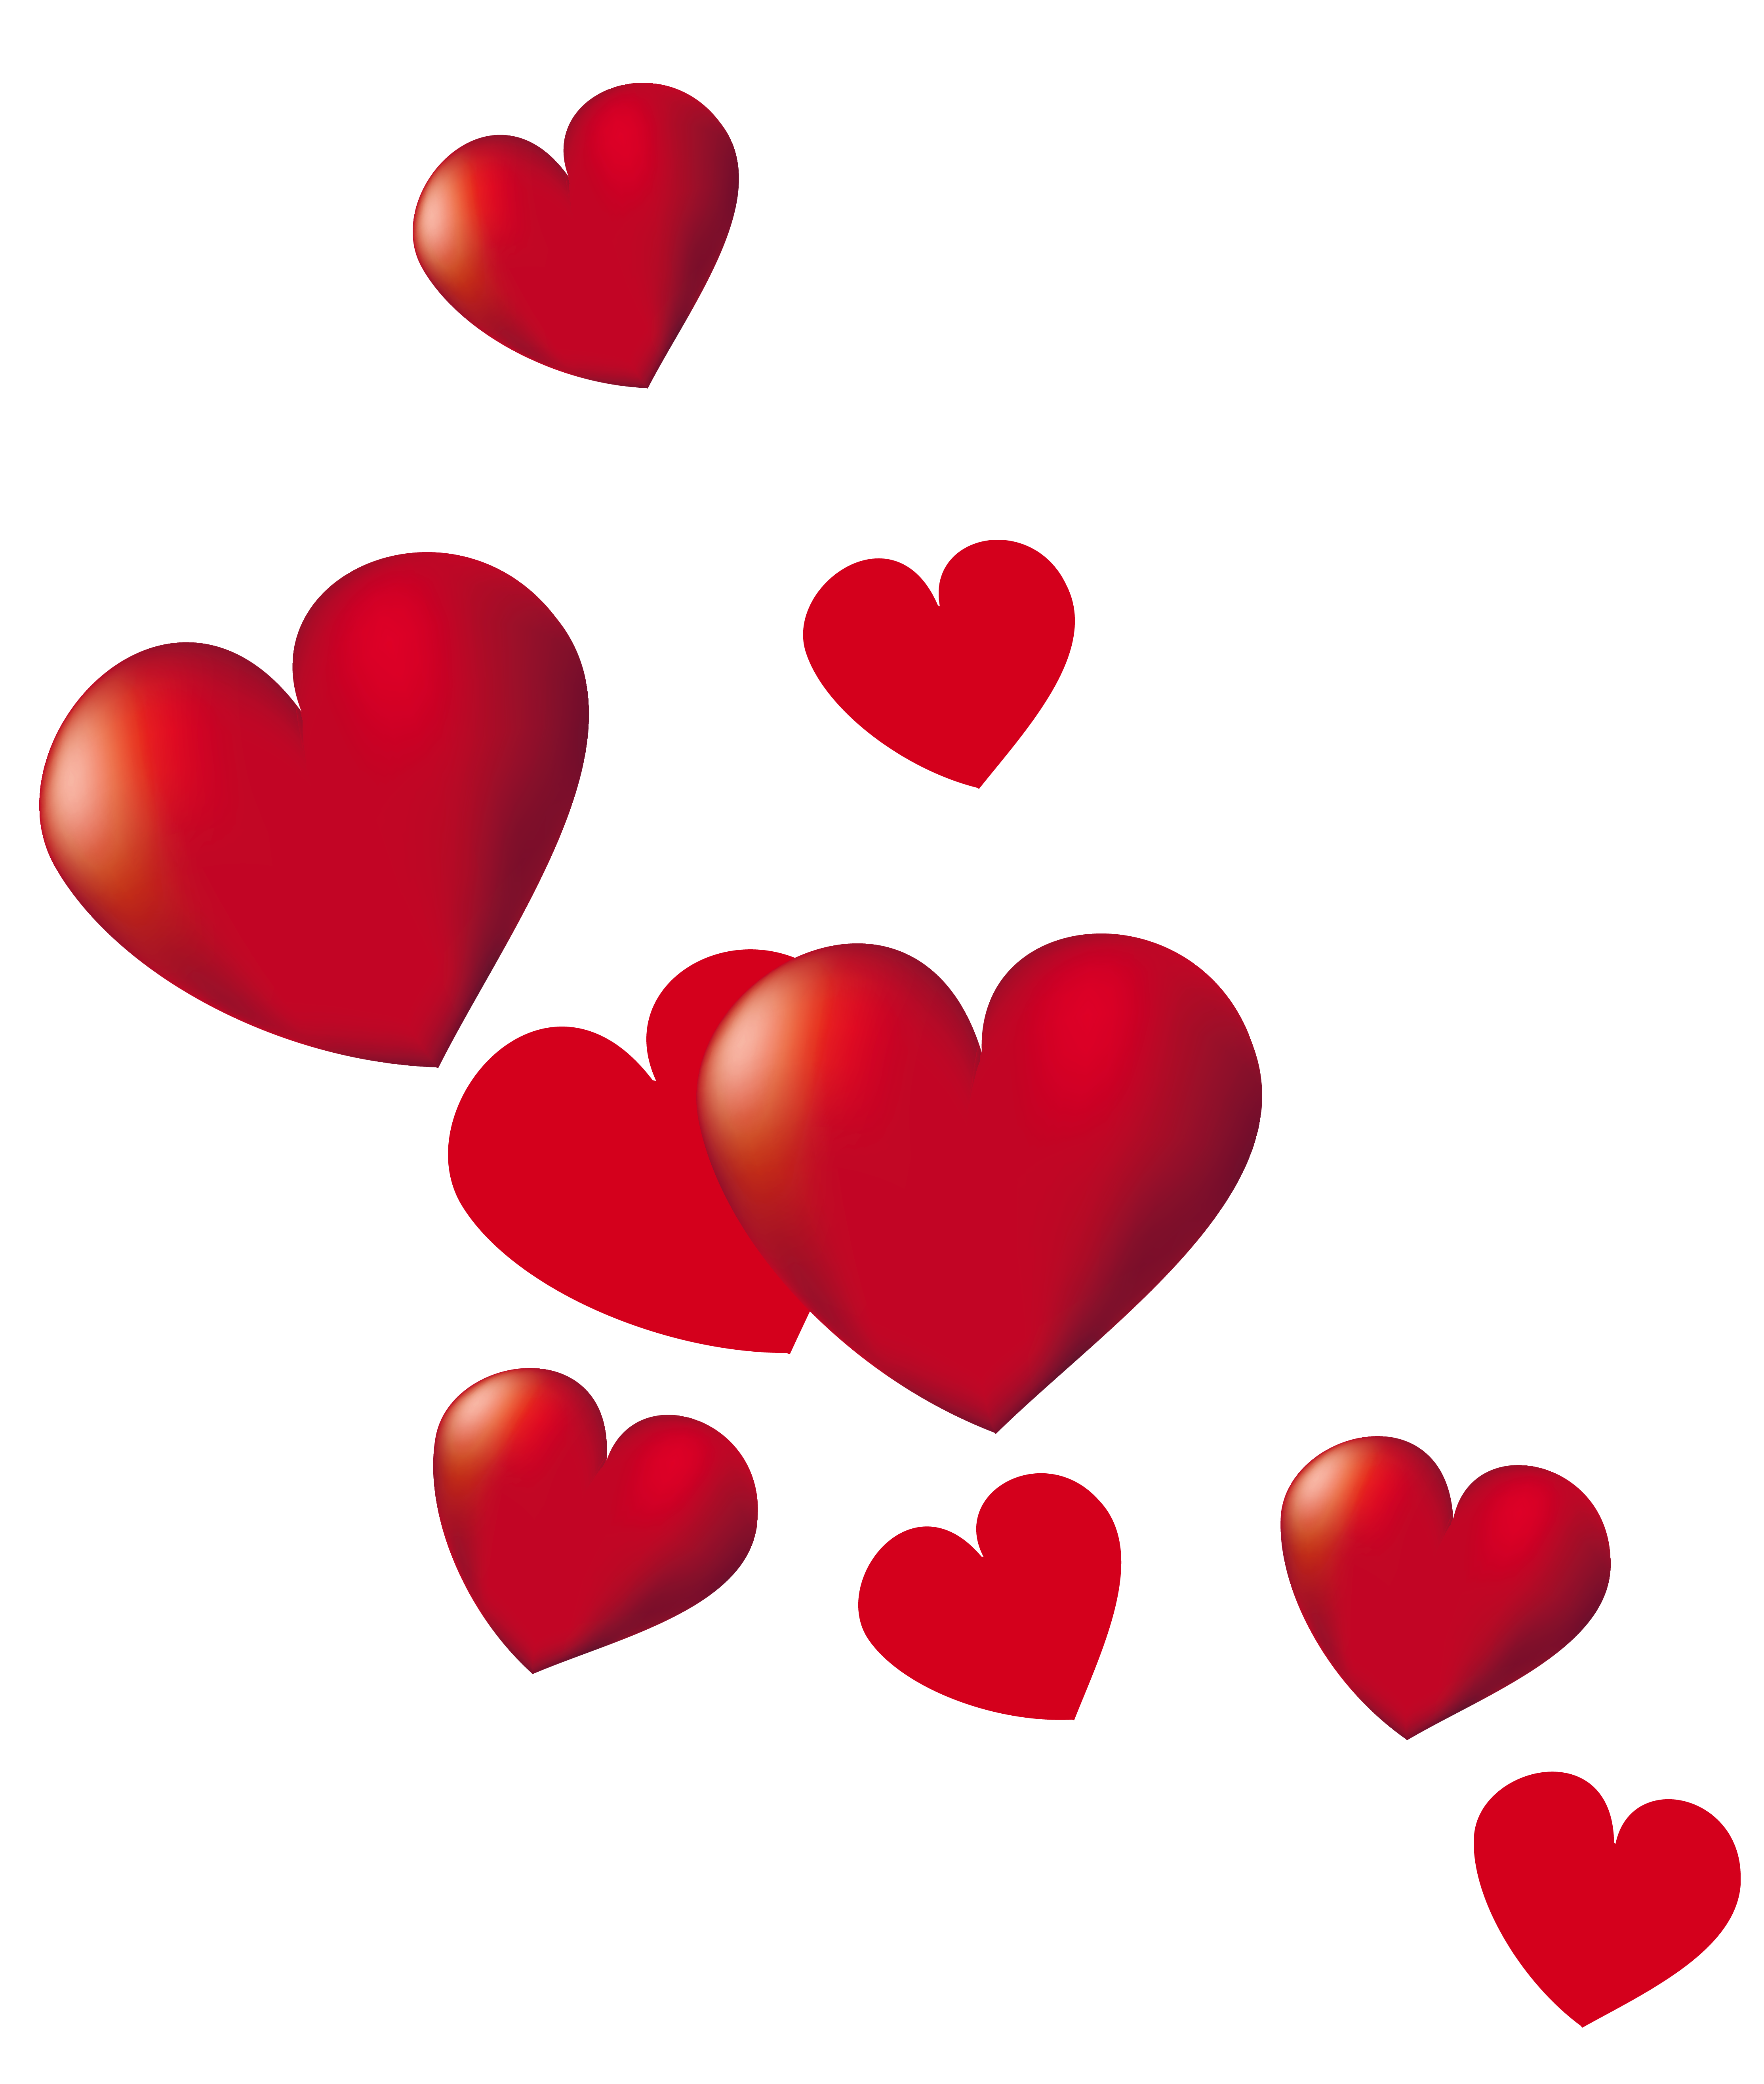 Hearts clipart love. Png picture gallery yopriceville